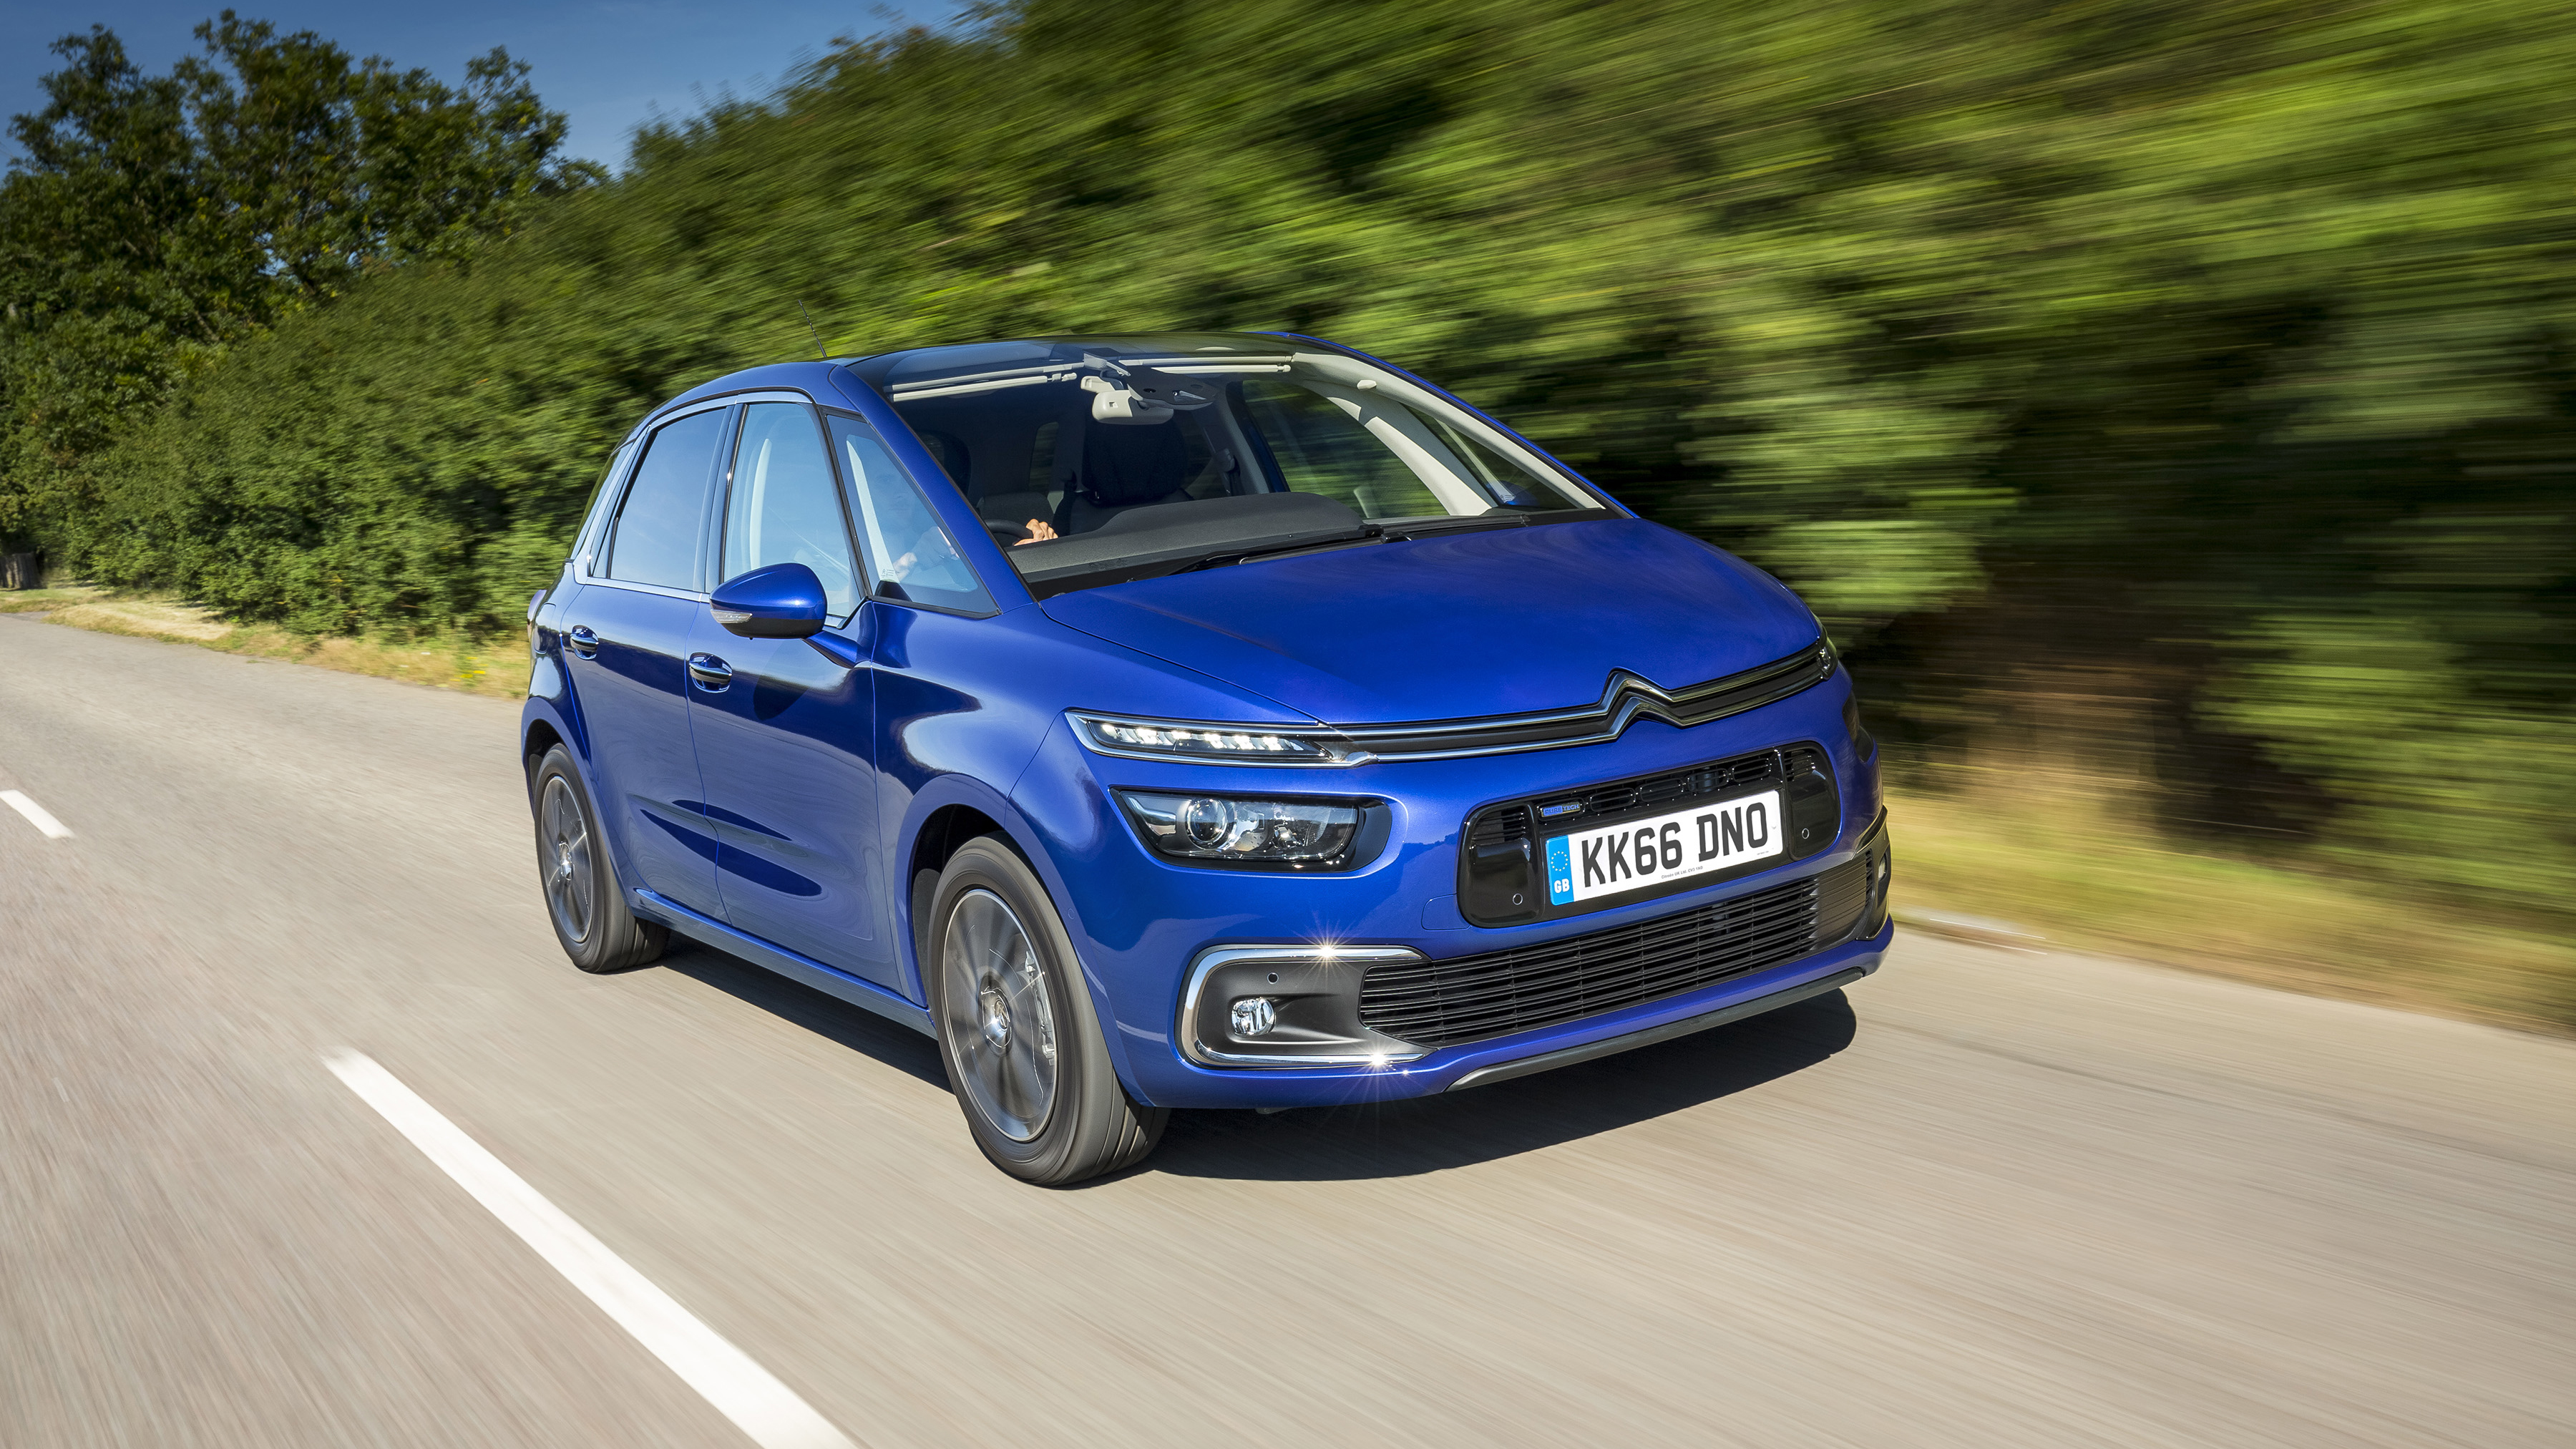 citroen c4 picasso review and buying guide best deals and. Black Bedroom Furniture Sets. Home Design Ideas